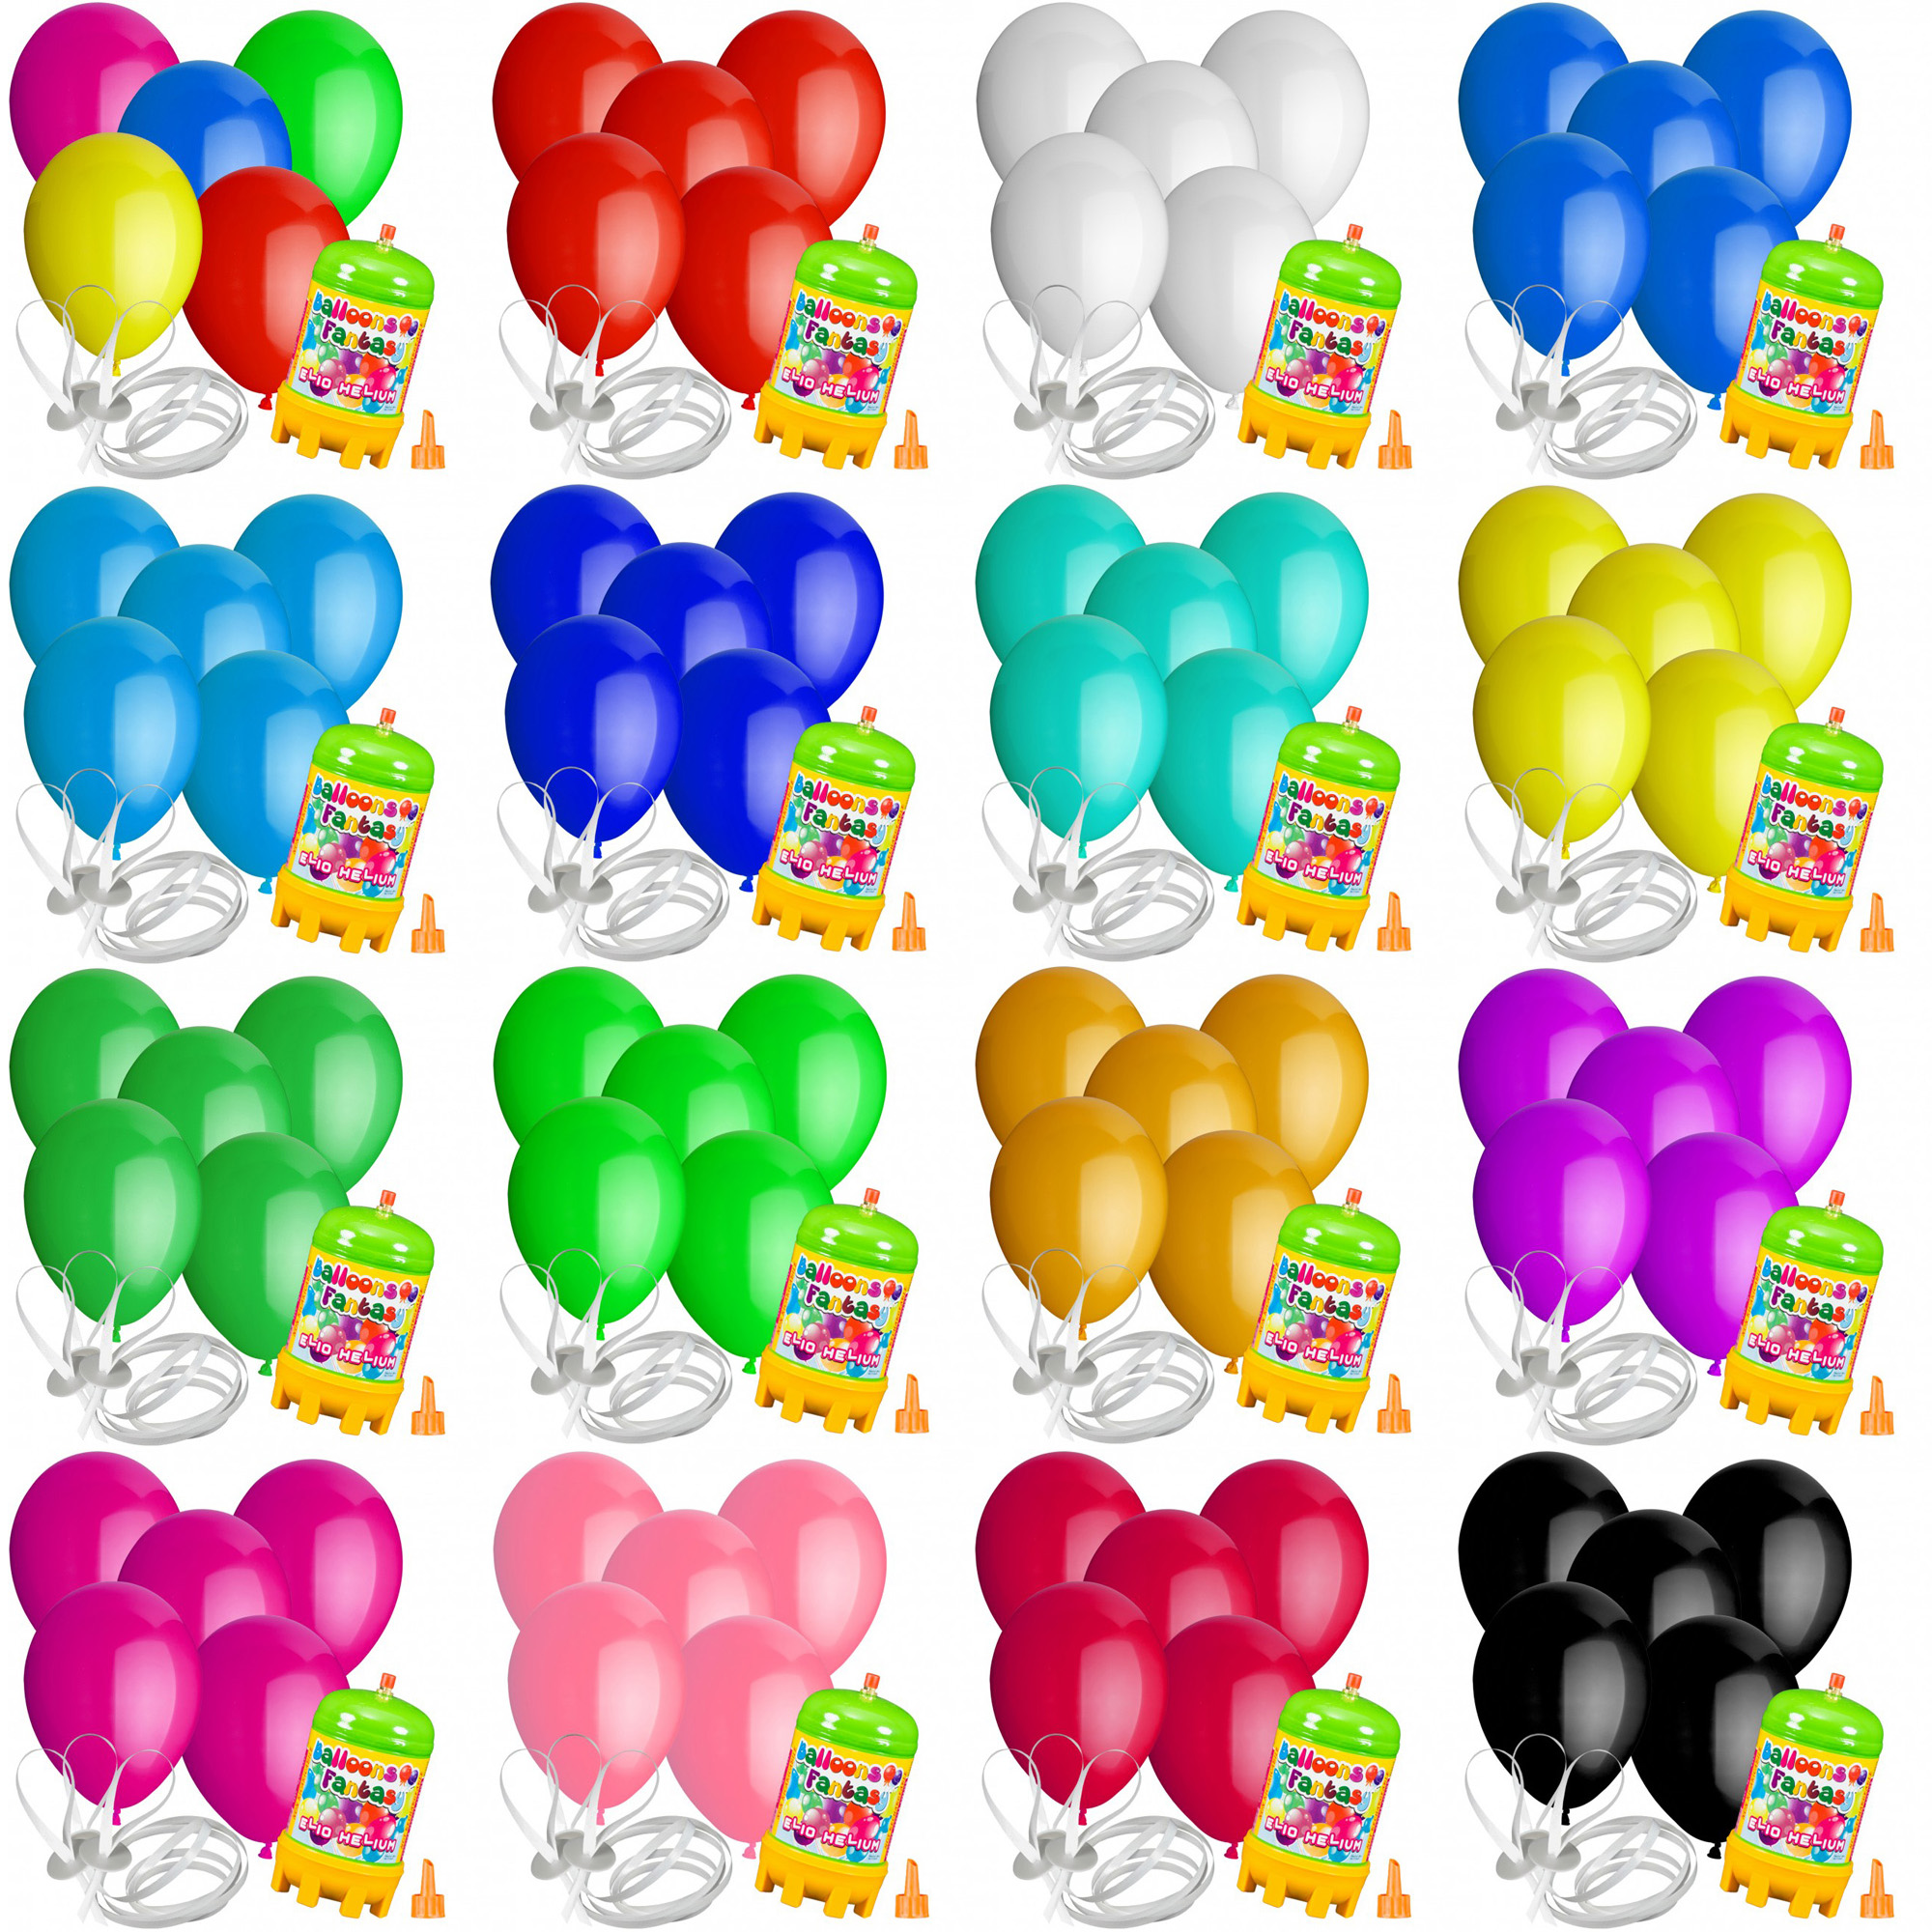 10 luftballons 30 cm mit helium ballon gas hochzeit geburtstag komplettset ebay. Black Bedroom Furniture Sets. Home Design Ideas